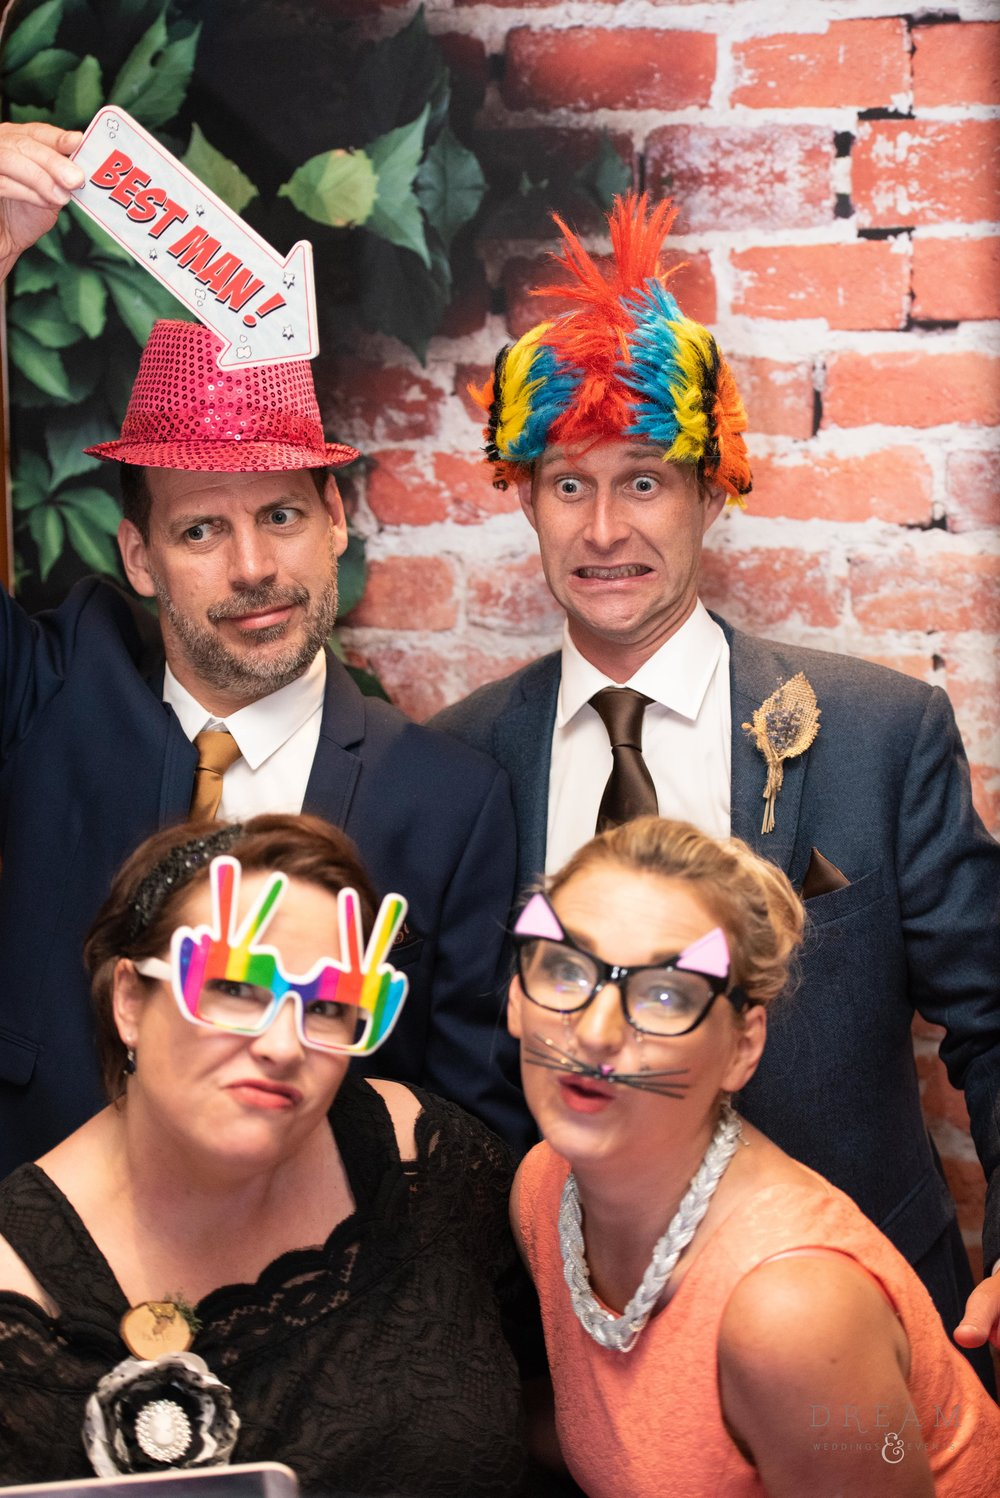 Corporate Event Magic Mirror Photo Booth Hire Nottingham, Derby, Leicester, East Midlands.